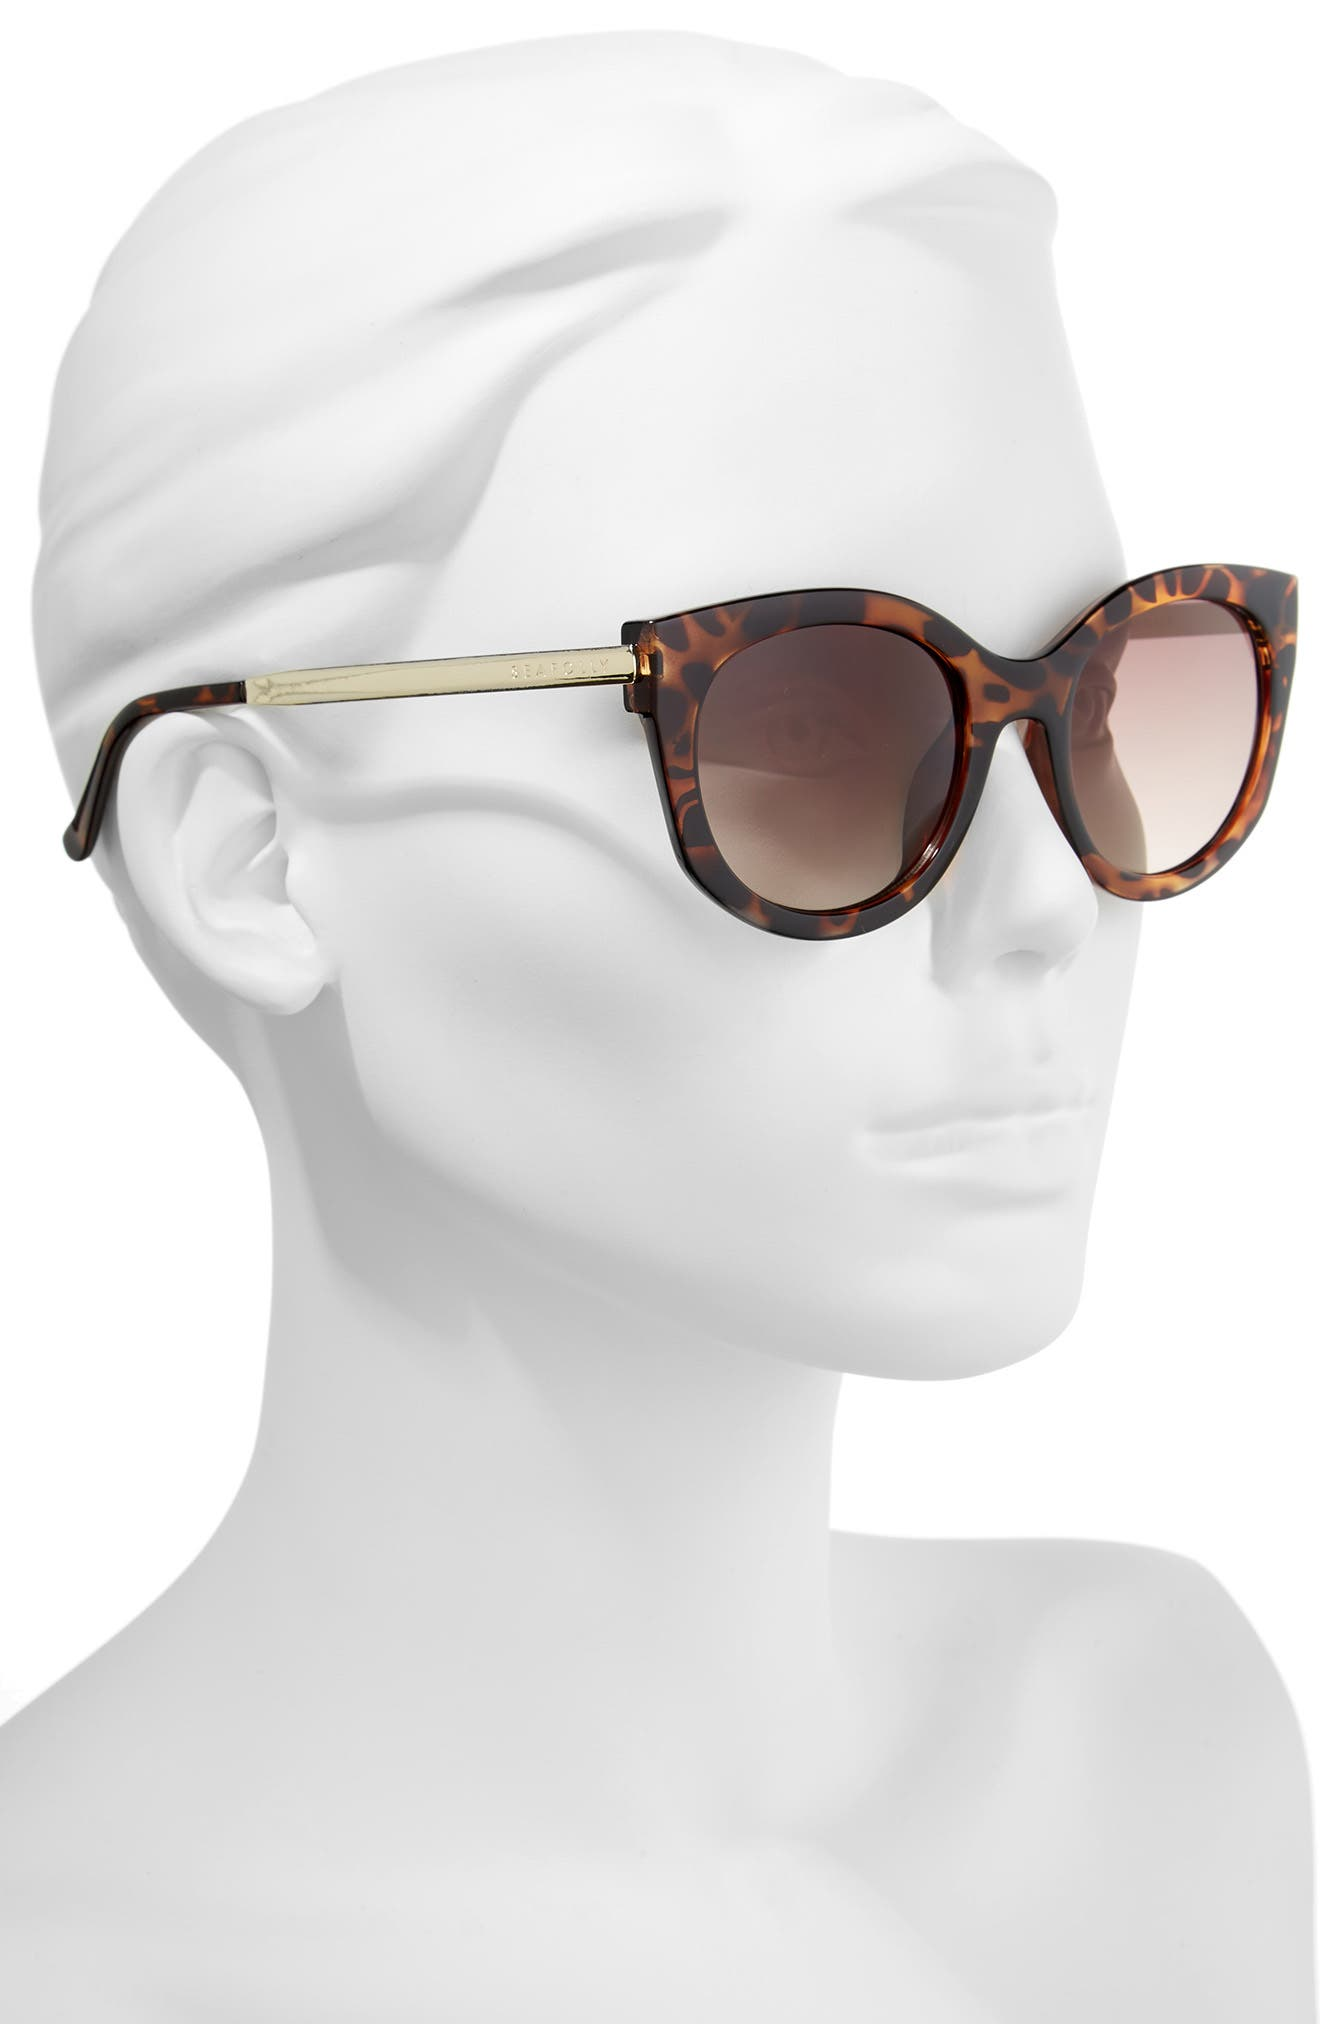 Long Beach 51mm Cat Eye Sunglasses,                             Alternate thumbnail 2, color,                             Dark Tort